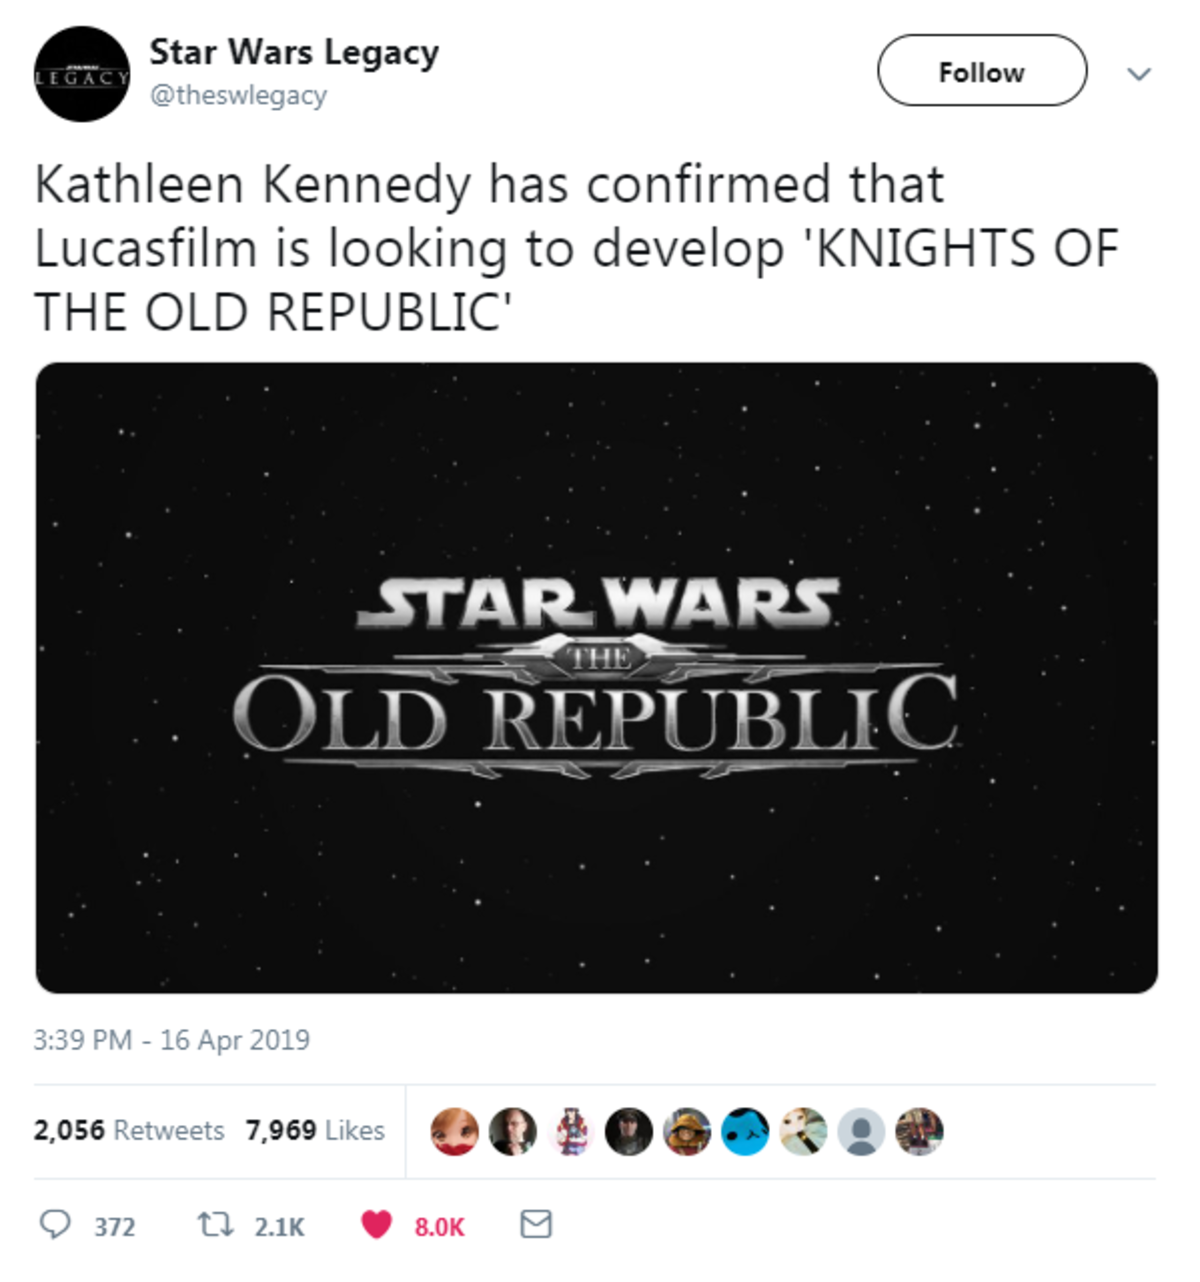 IT IS TIME!. .. I'm conflicted. On one hand, I love Knights of the Old Republic and am glad it is getting the attention it deserves. On the other hand, I have a feeling they ar